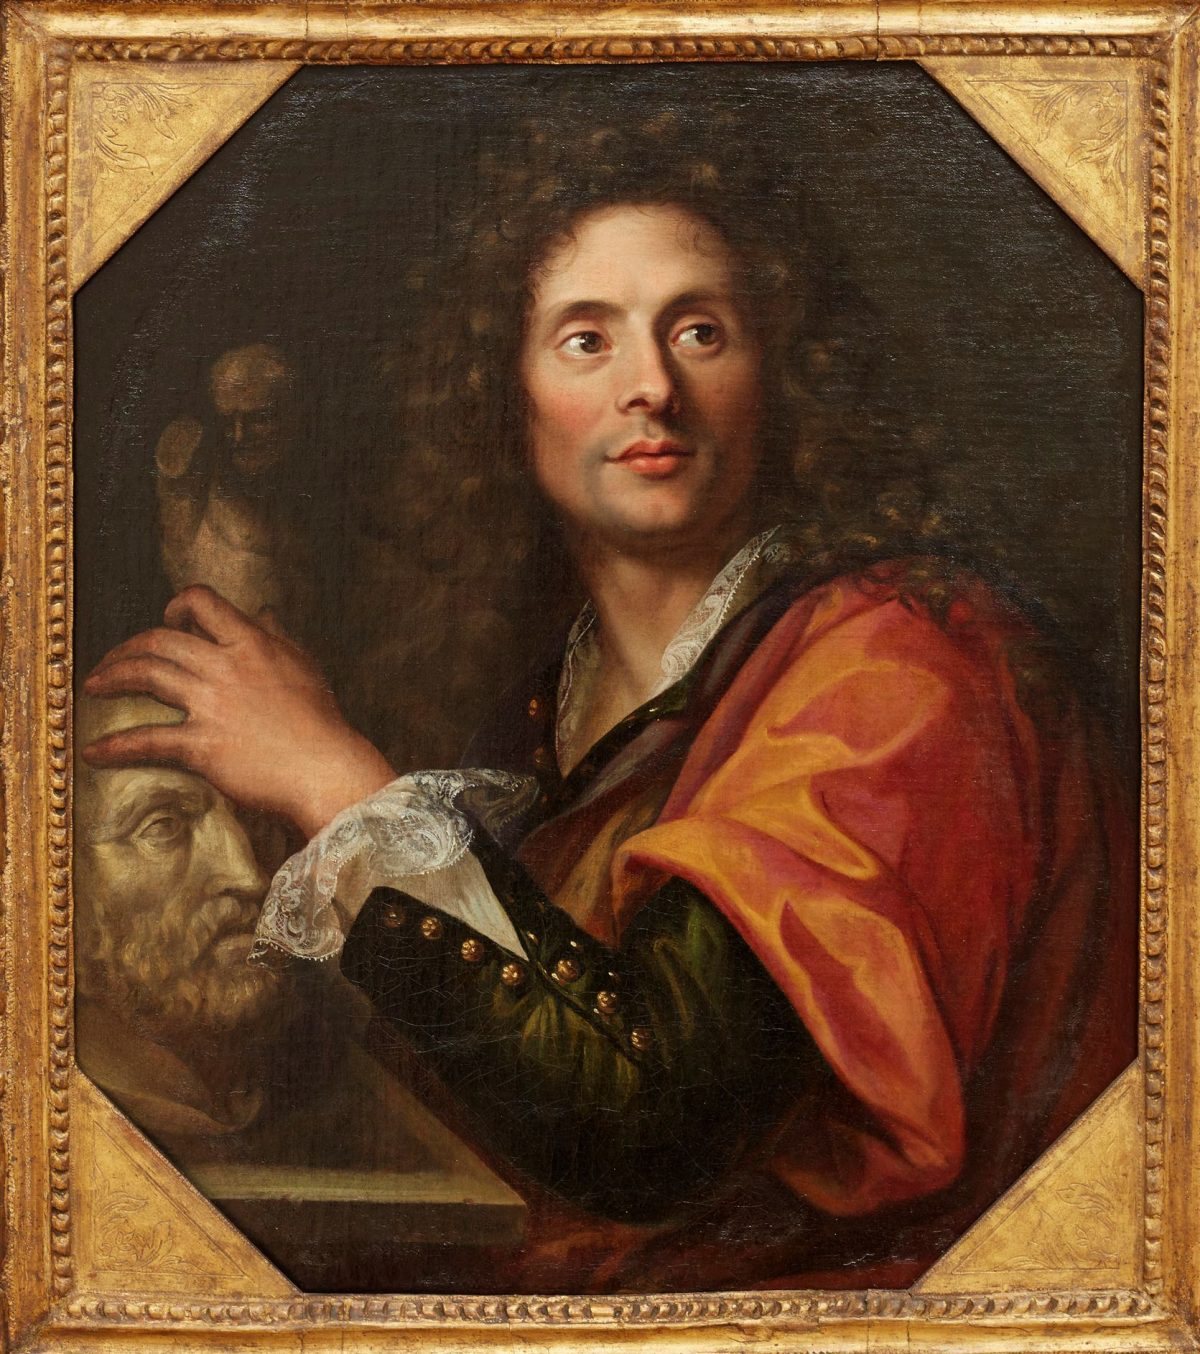 Portrait of a Sculptor, Gabriel Revel, 26 ¼ x 22 ¼, oil on canvas. A vertical rectangular portrait of a man in 17th century dress posing with sculpture. The man is depicted in three quarter view from the waist up with his shoulder turned towards the viewer. His arm crosses in front of him and his hand rests on a sculpture. His body is turned towards the left and he gazes off to the right. The man is light-skinned with large brown eyes, full lips and long, full, curly brown hair that falls well past his shoulders. He wears a brownish-black coat that is open at the throat over a white shirt with lace at the collar and cuffs. Round brass buttons line the front and cuff of the coat. Draped over his shoulder is a length of red shiny fabric. His hand rests on a bust of a bearded man while another statuette stands in the dark background. The four corners of the painting are clipped to create an elongated octagon shaped canvas.